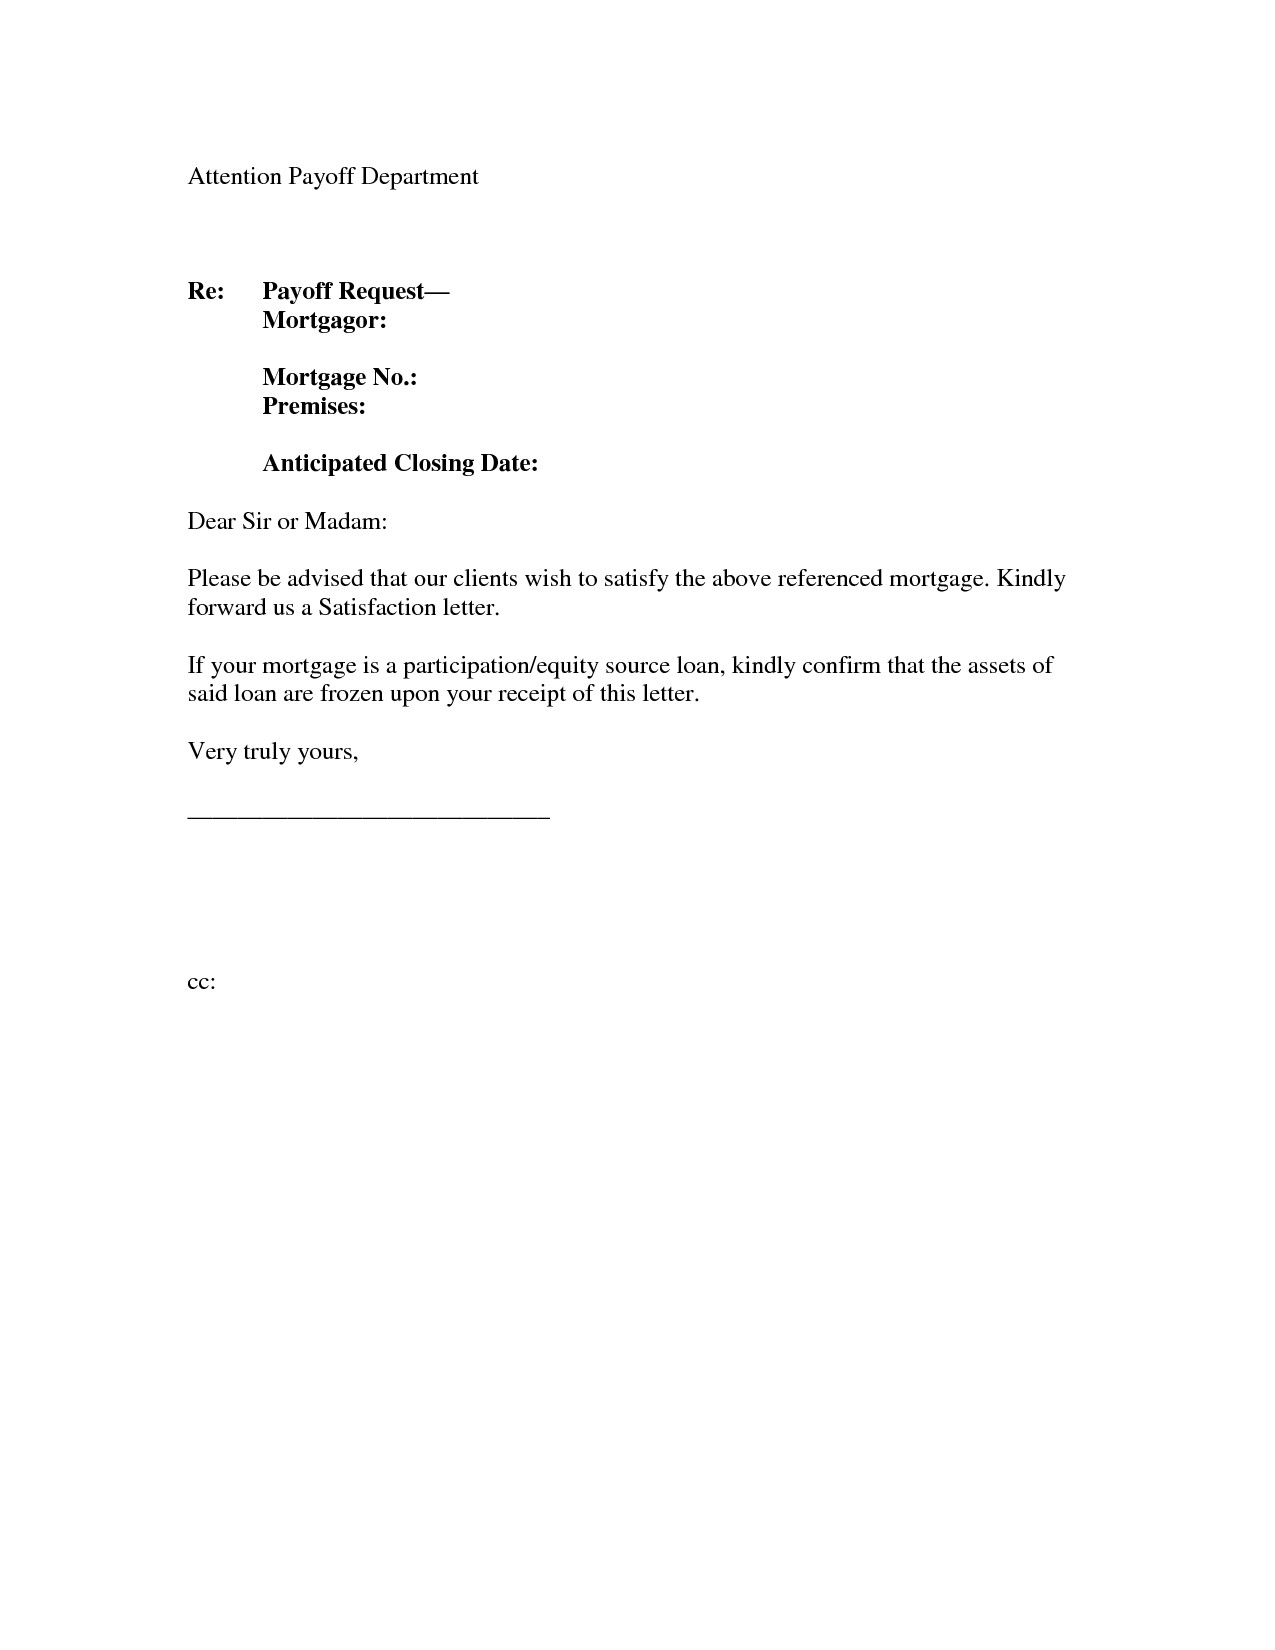 Mortgage Loan Payoff Letter Template - Loan Gift Letter Template New Request Letter for Bank Guarantee